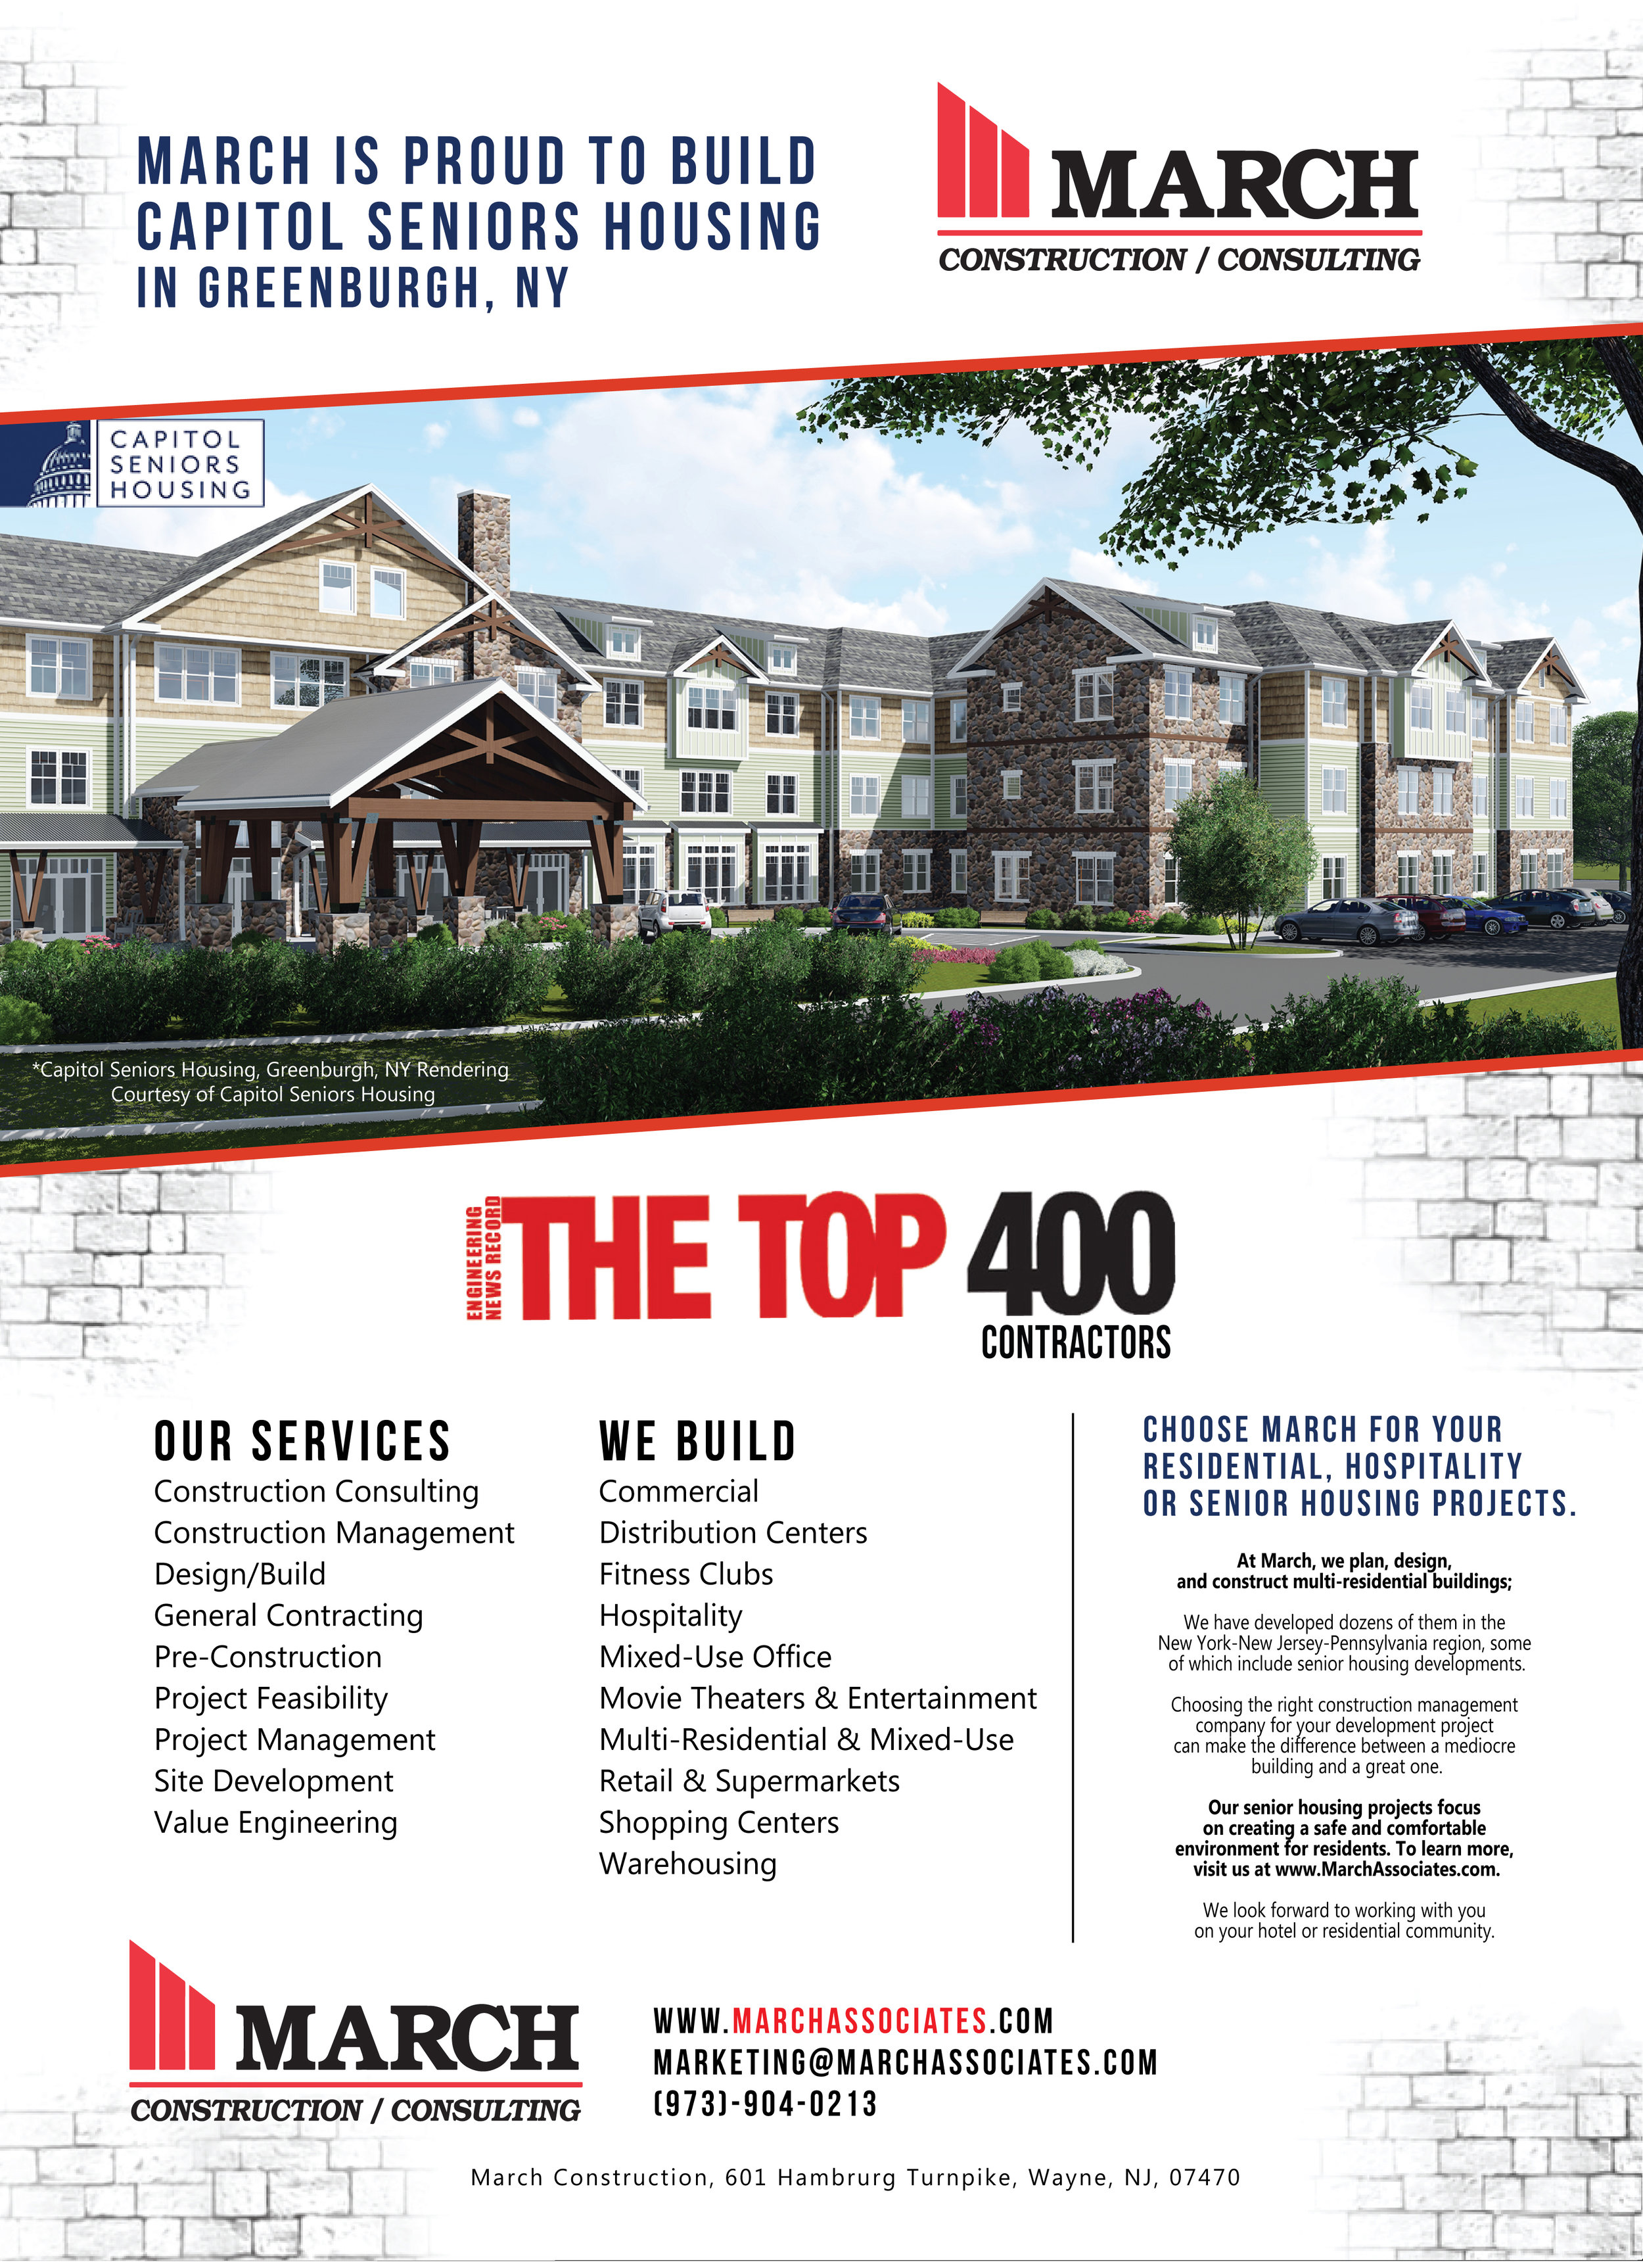 March Construction is proud to build Capitol Seniors Housing in Greenburgh, NY